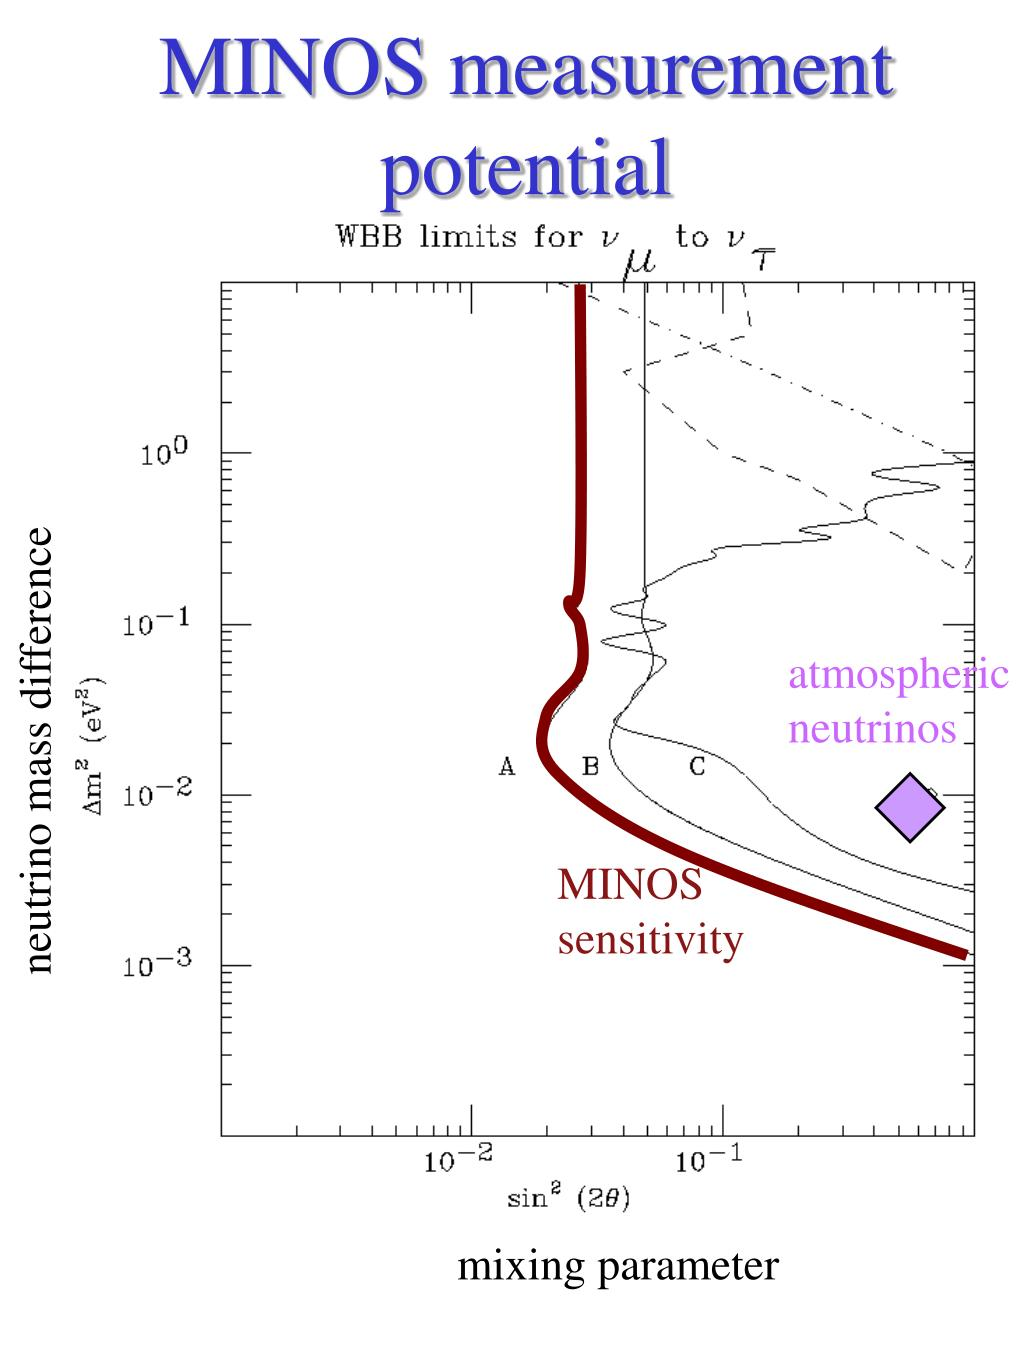 MINOS measurement potential